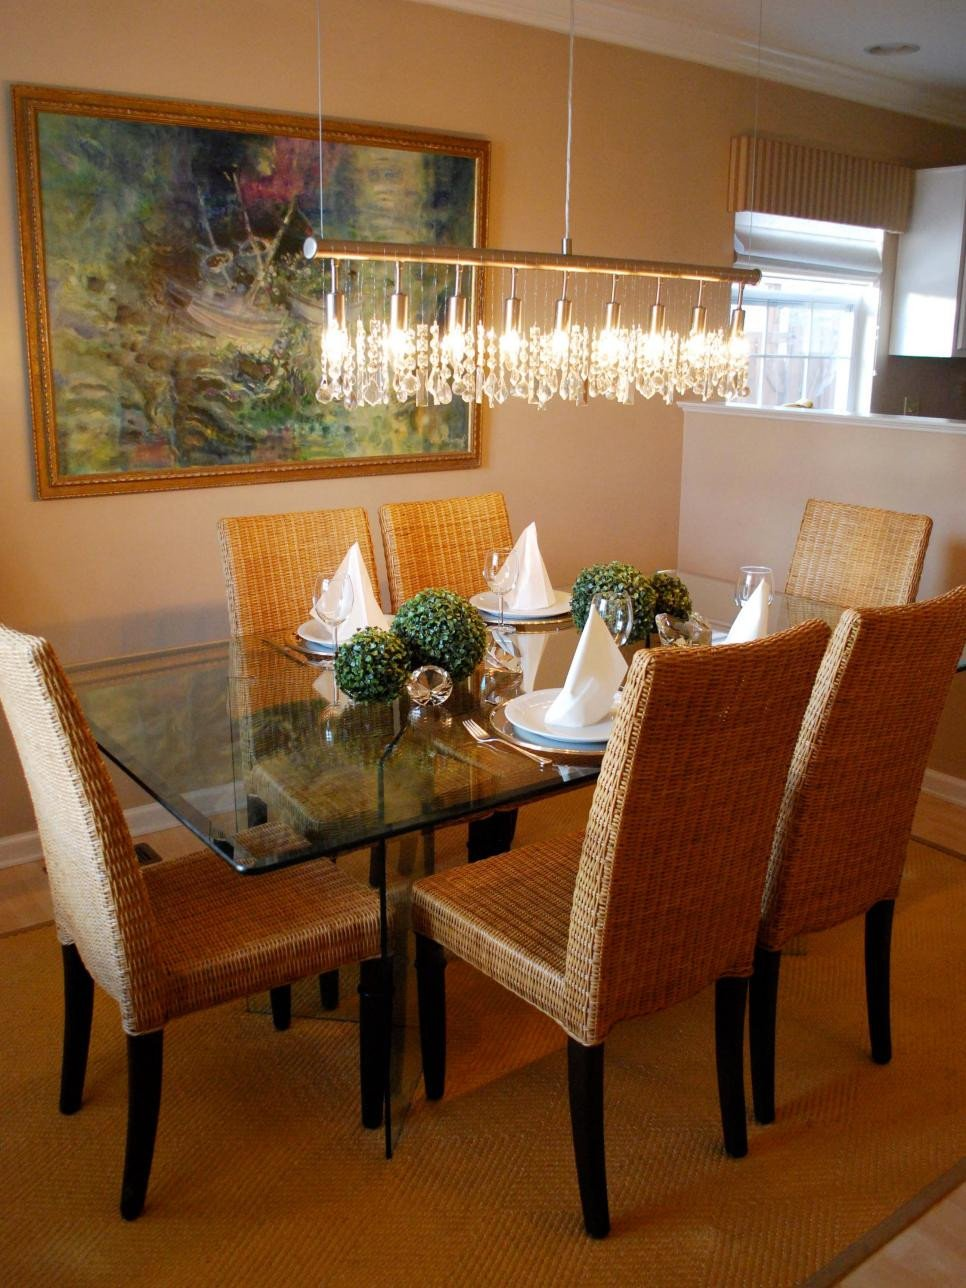 Room Decor On A Budget Best Of Dining Rooms On A Bud Our 10 Favorites From Rate My Space